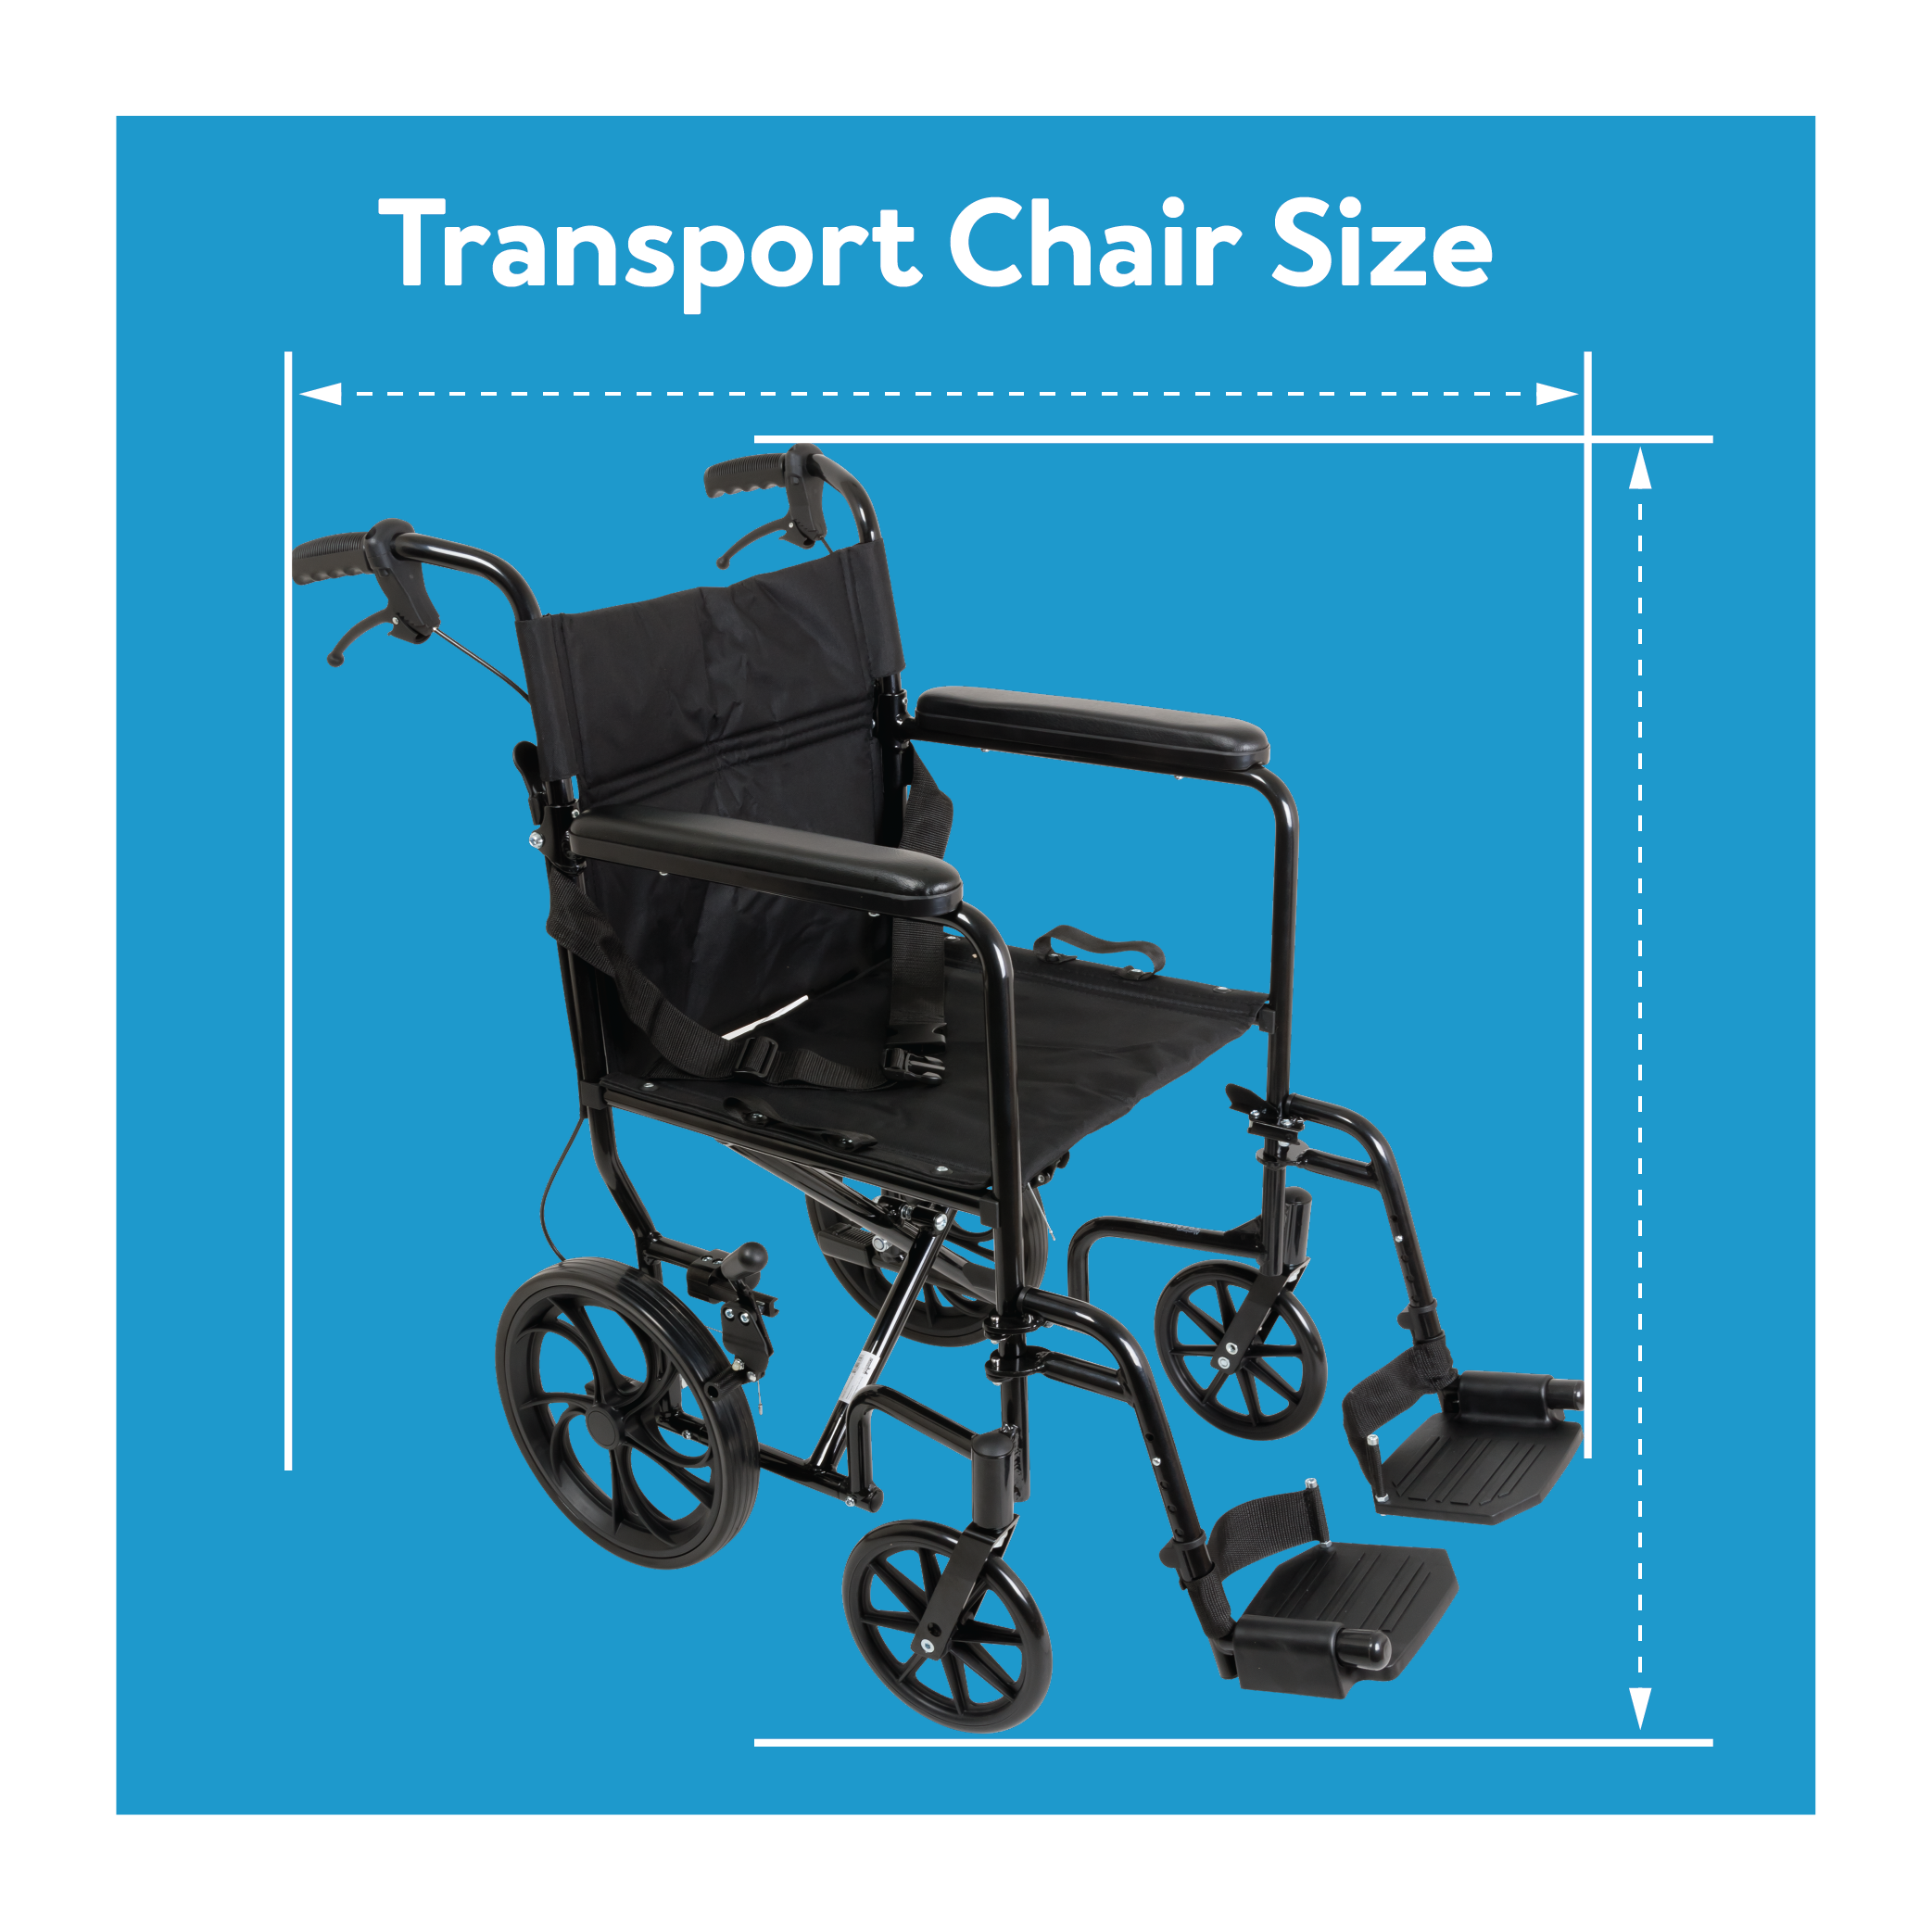 Transport Chair Size